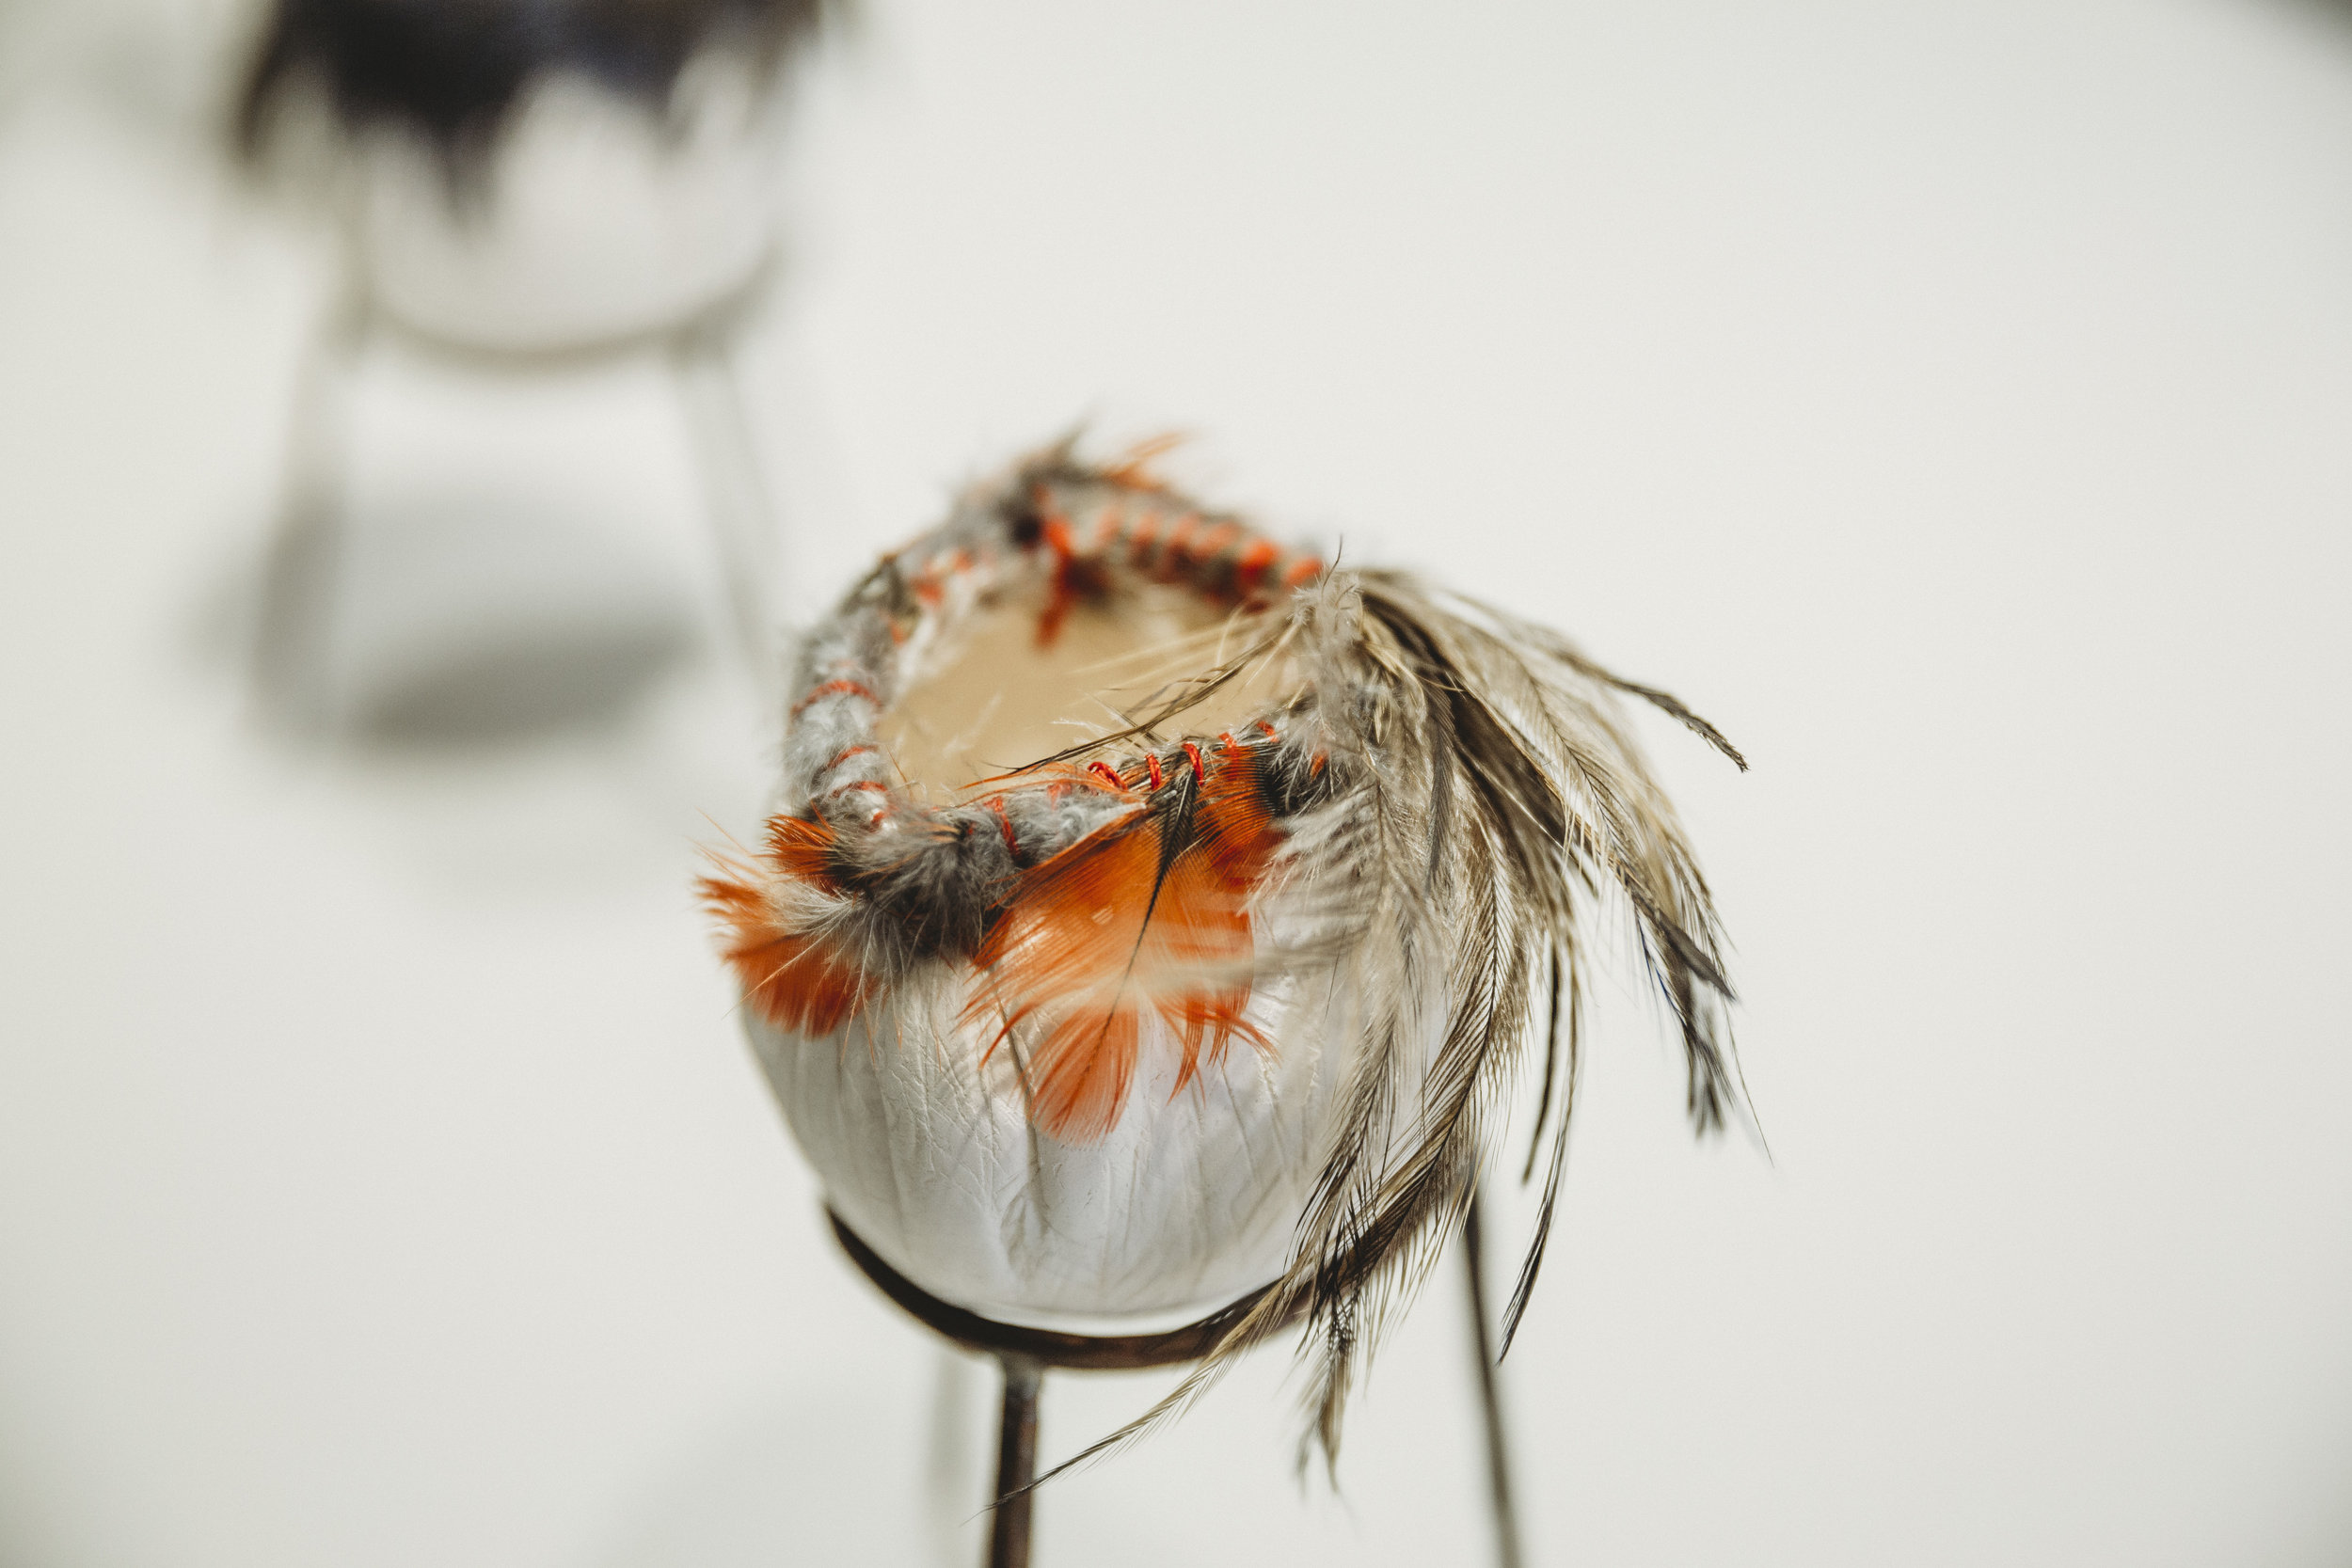 Lisa Waup,  Keeping Culture 5/7 , porcelain, Emu feathers, parrot feathers, cotton, hand forger copper railway waire, silver solder, 21 x 10 x 10 cm. Photography Amina Barolli